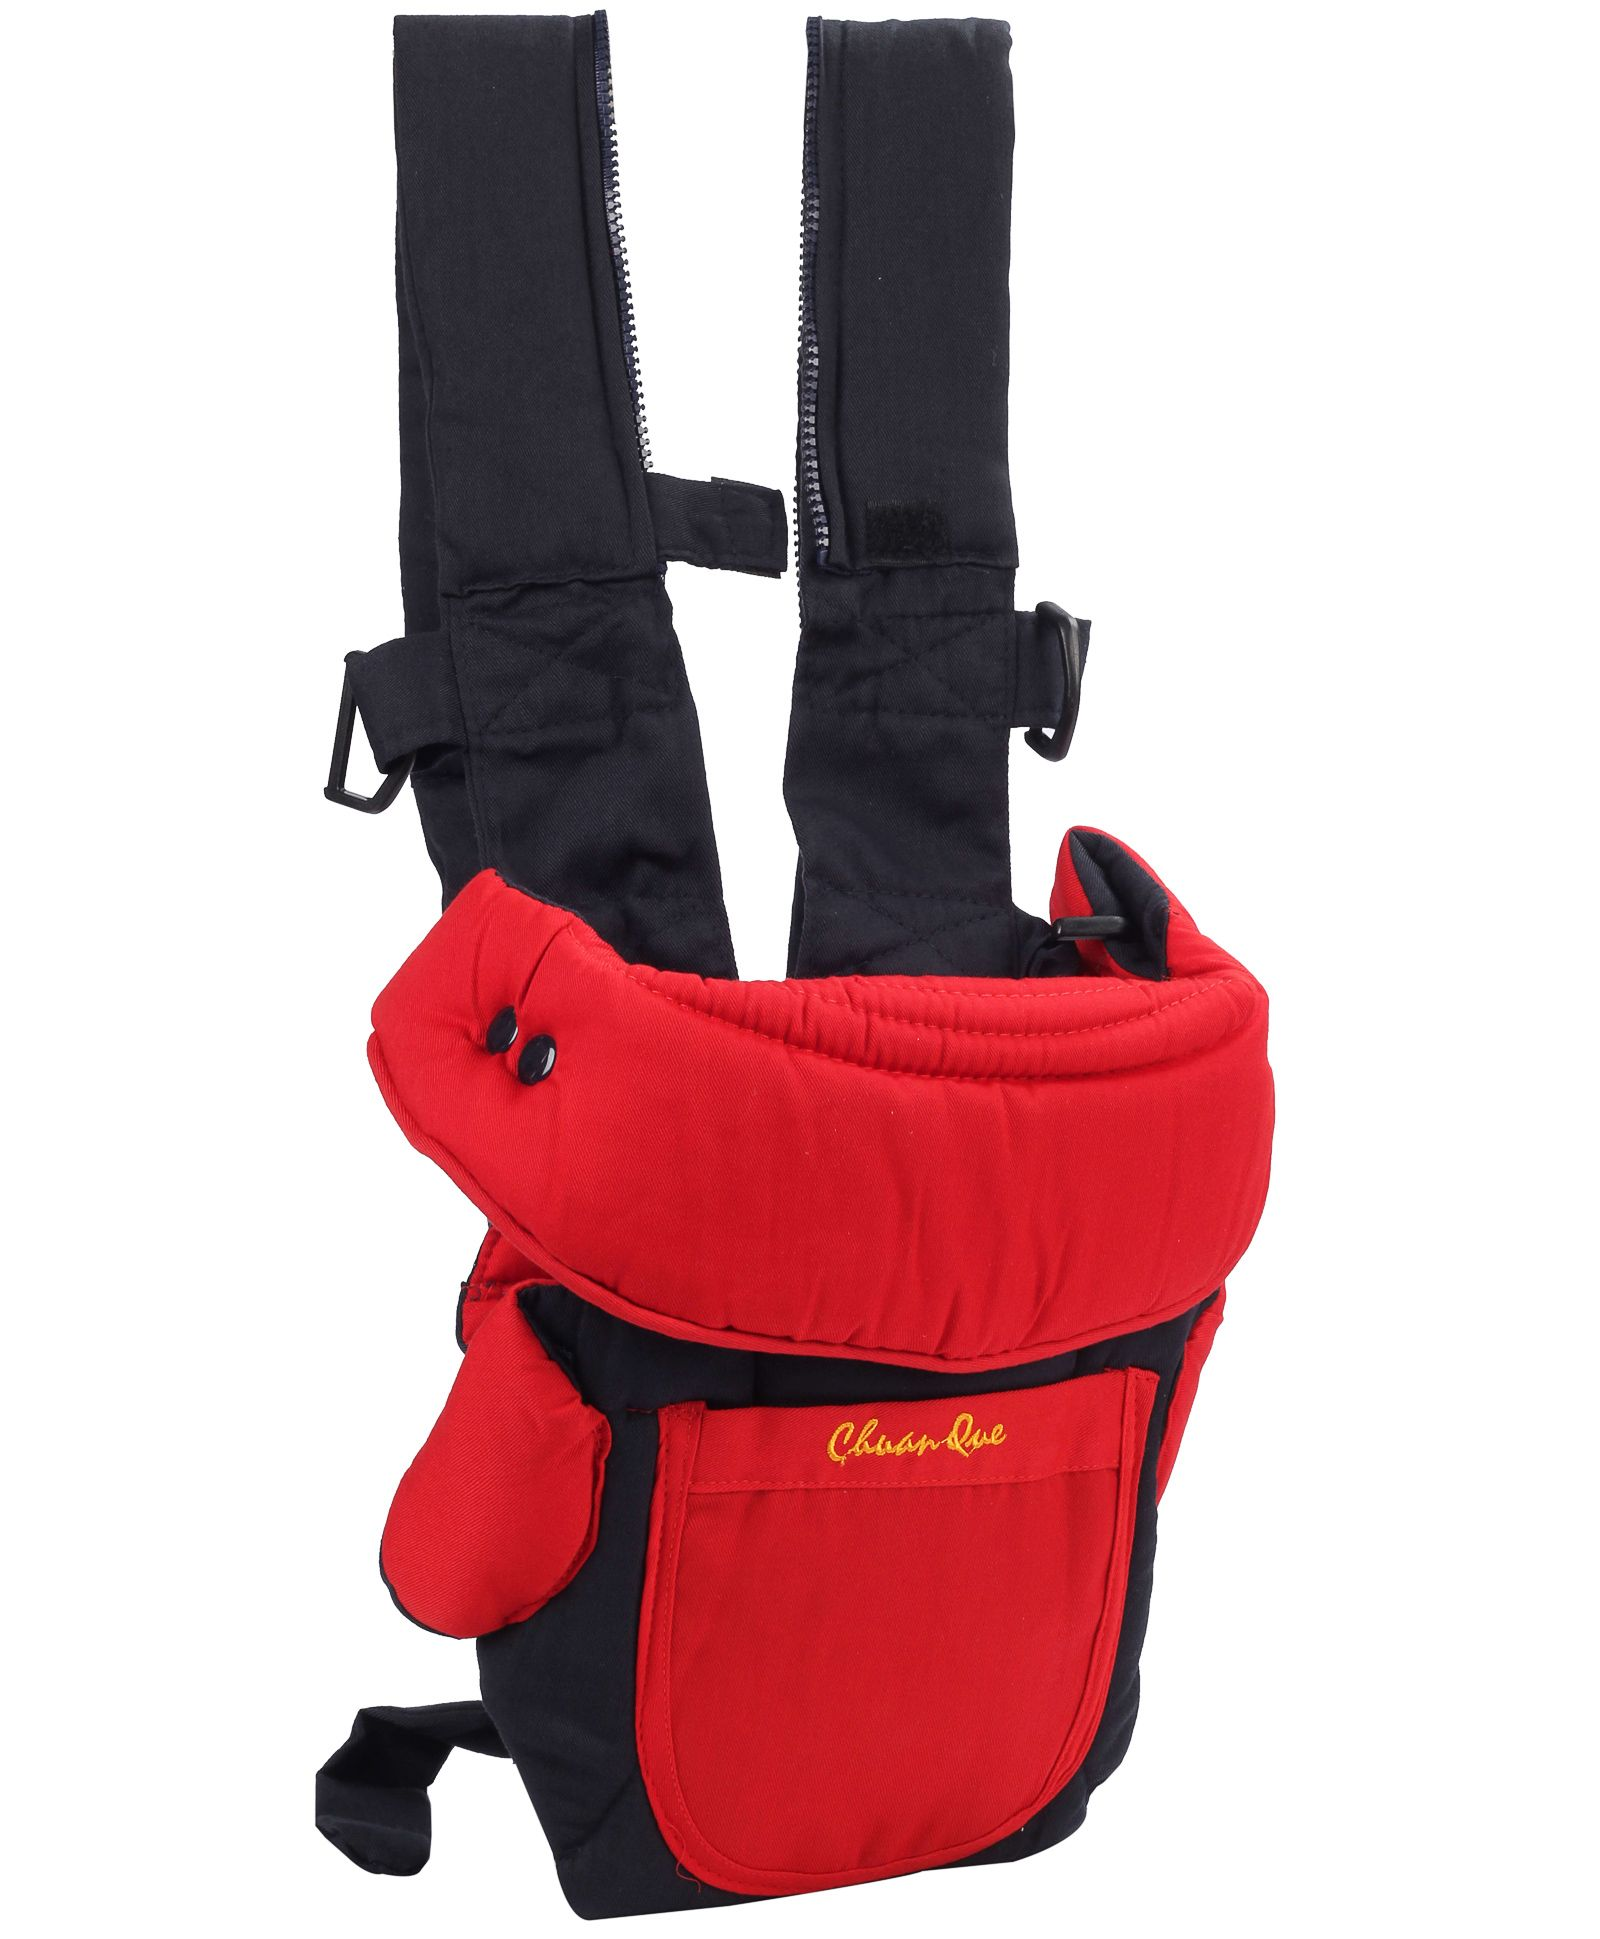 3 in 1 Soft Baby Carrier Red And Black - 3003